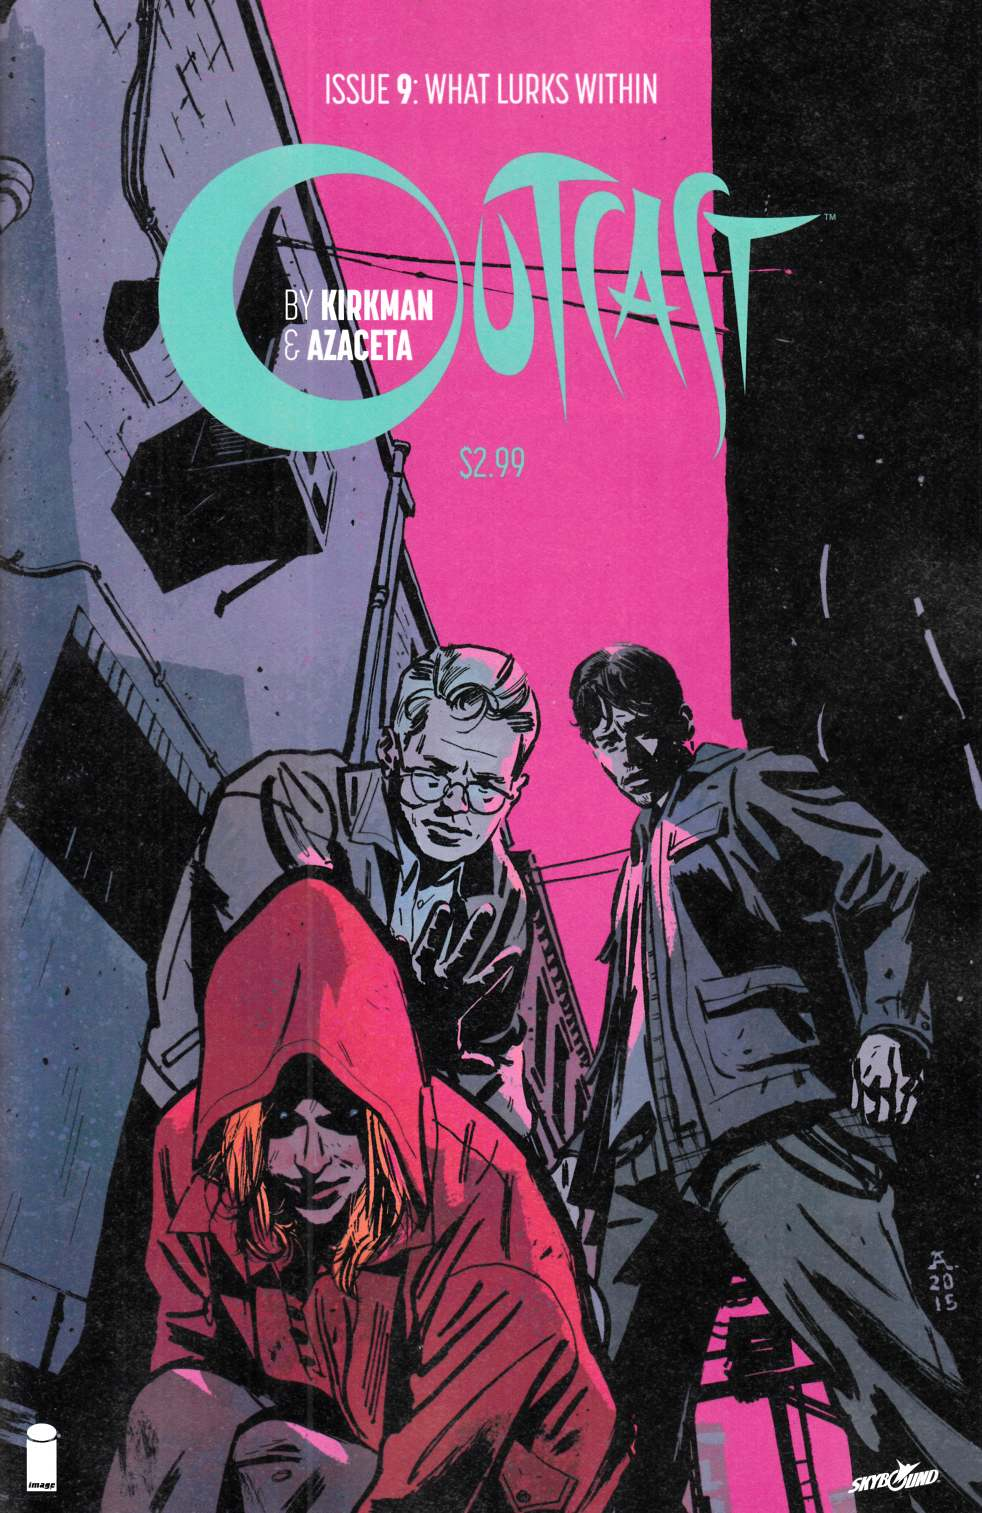 Outcast By Kirkman & Azaceta #9 [Image Comic] THUMBNAIL